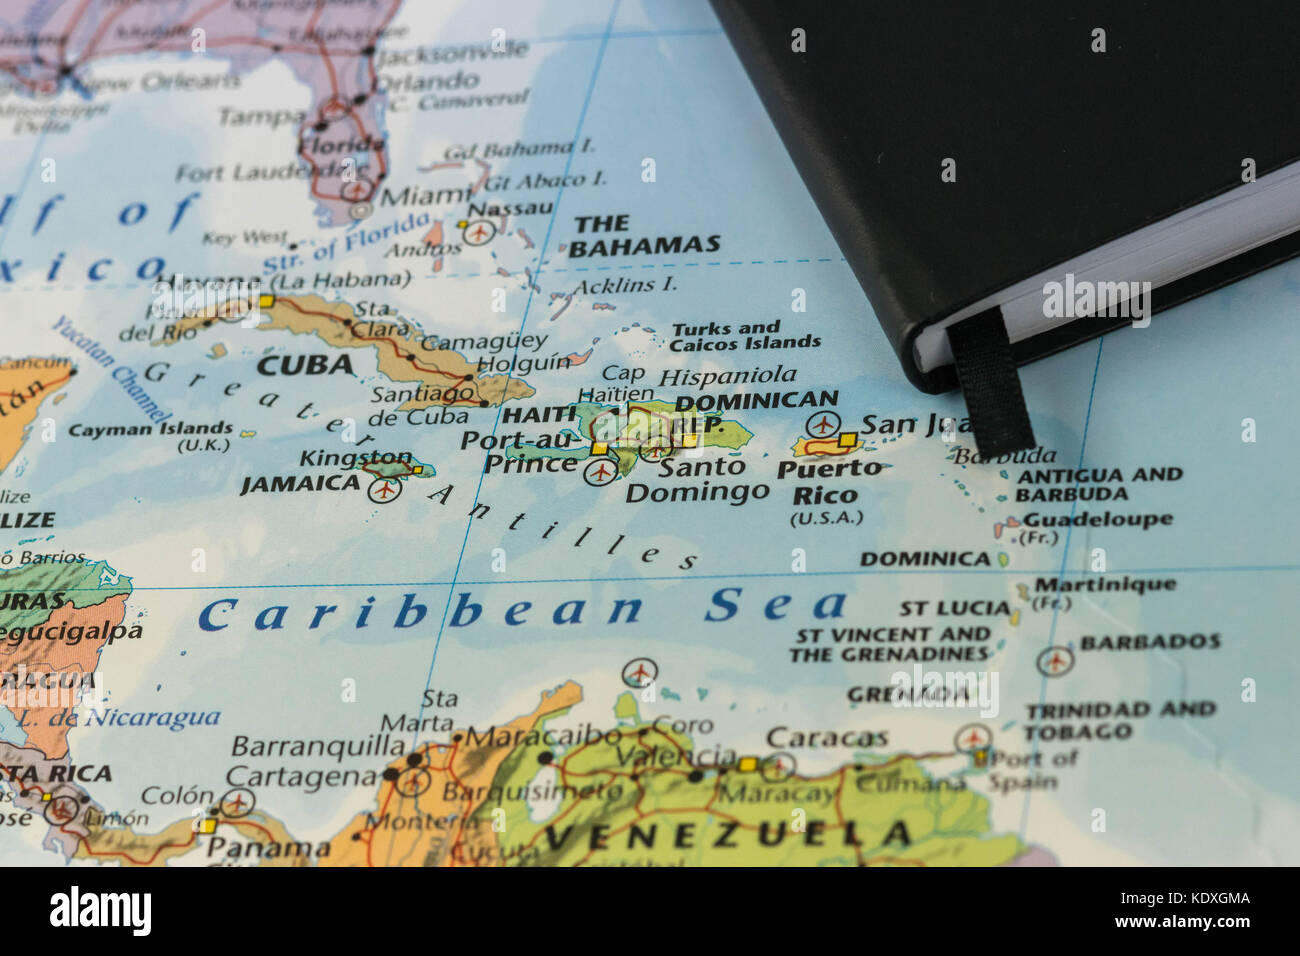 Map Of Bahamas Stock Photos & Map Of Bahamas Stock Images - Alamy